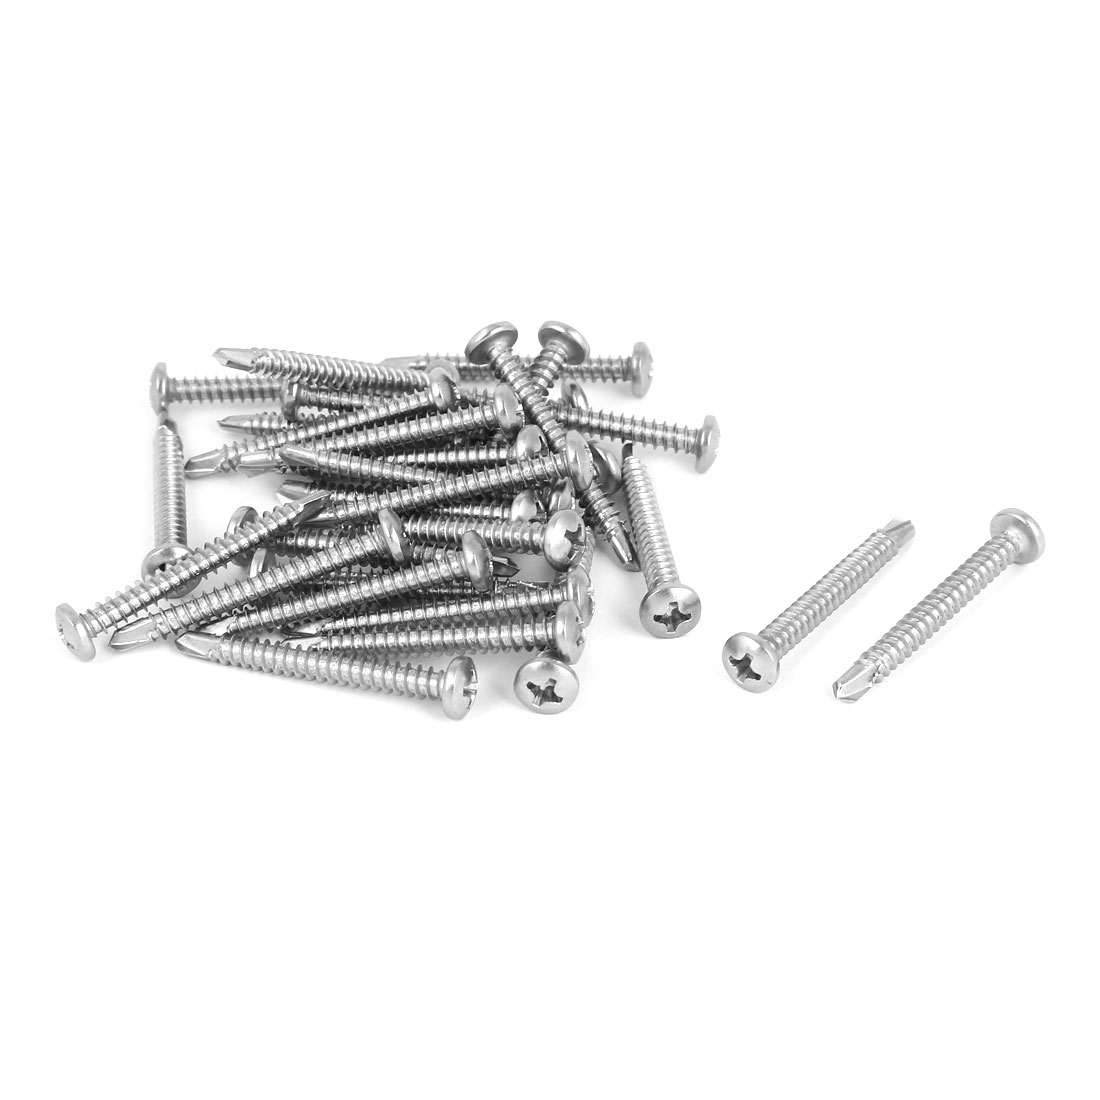 M4.2 x 38mm Thread Phillips Pan Head Self Drilling Tek Screws 30 Pcs